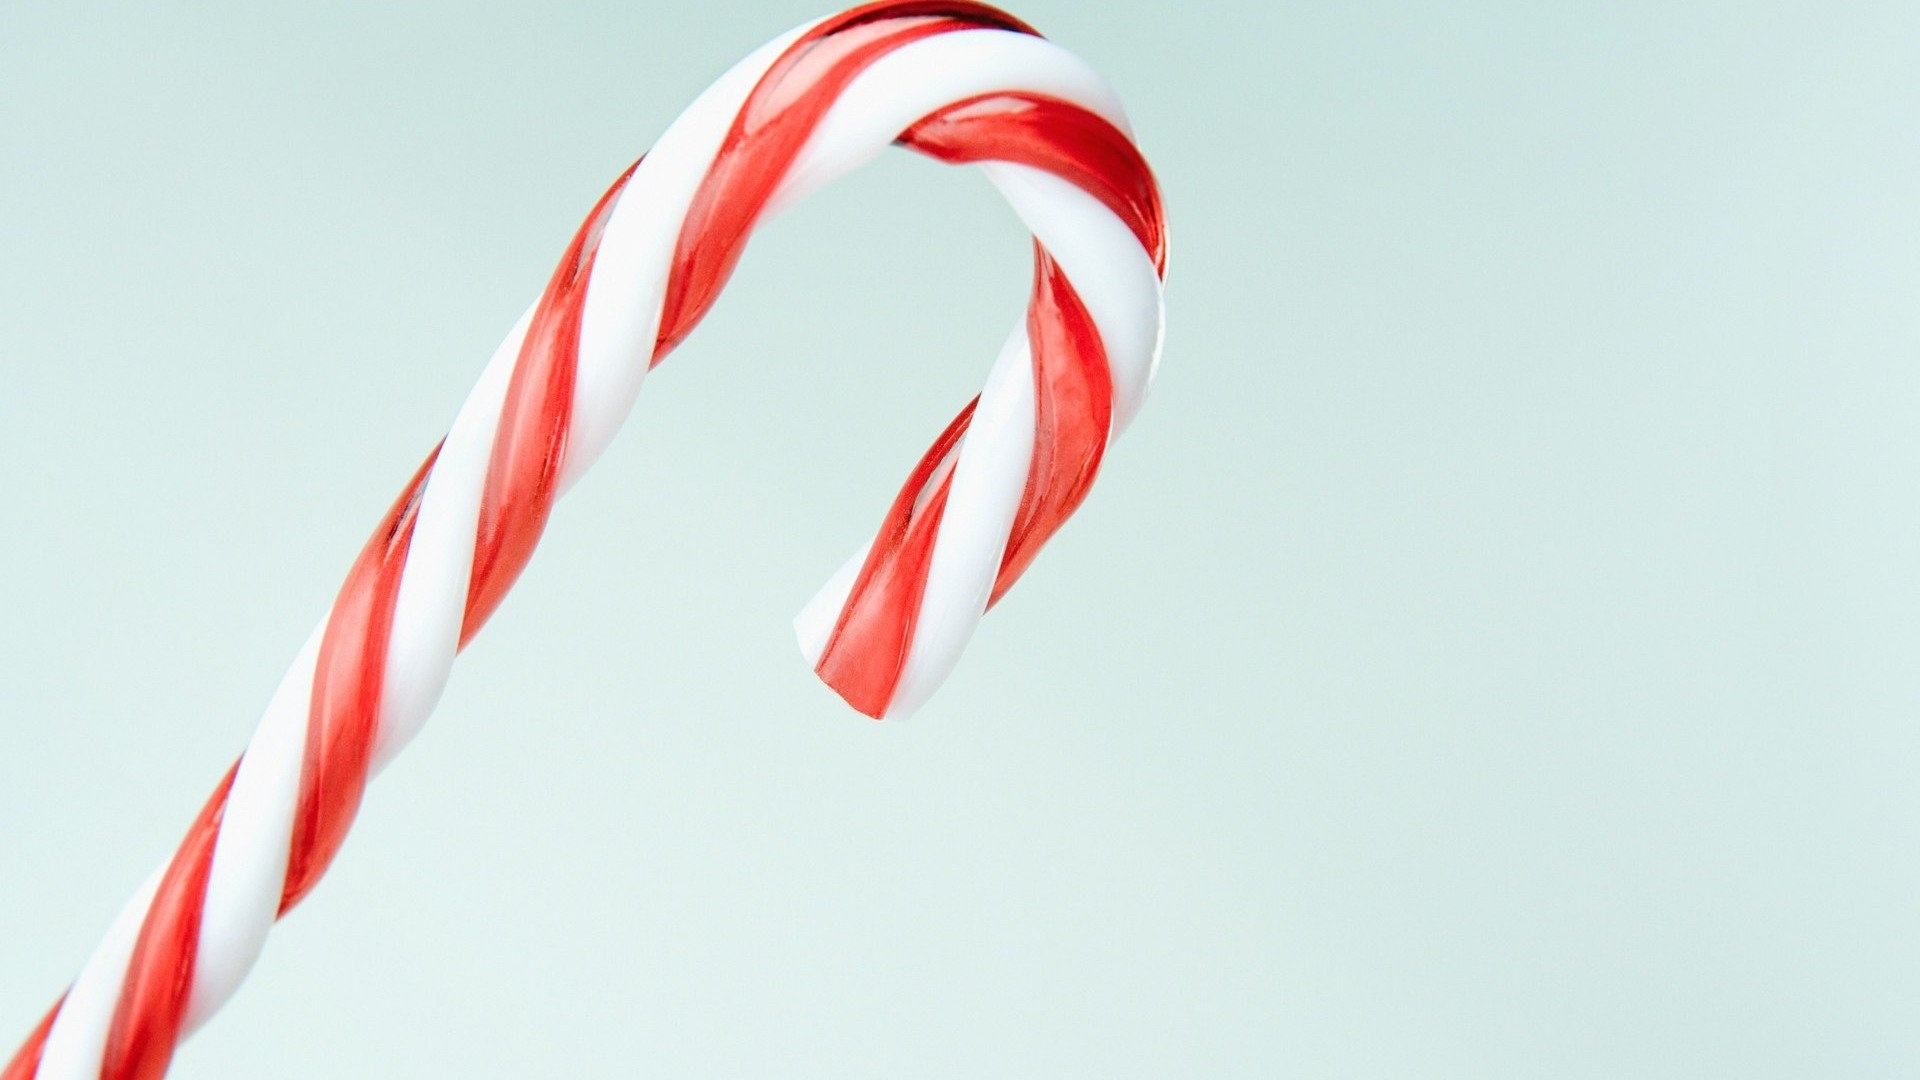 Candy Cane High Quality